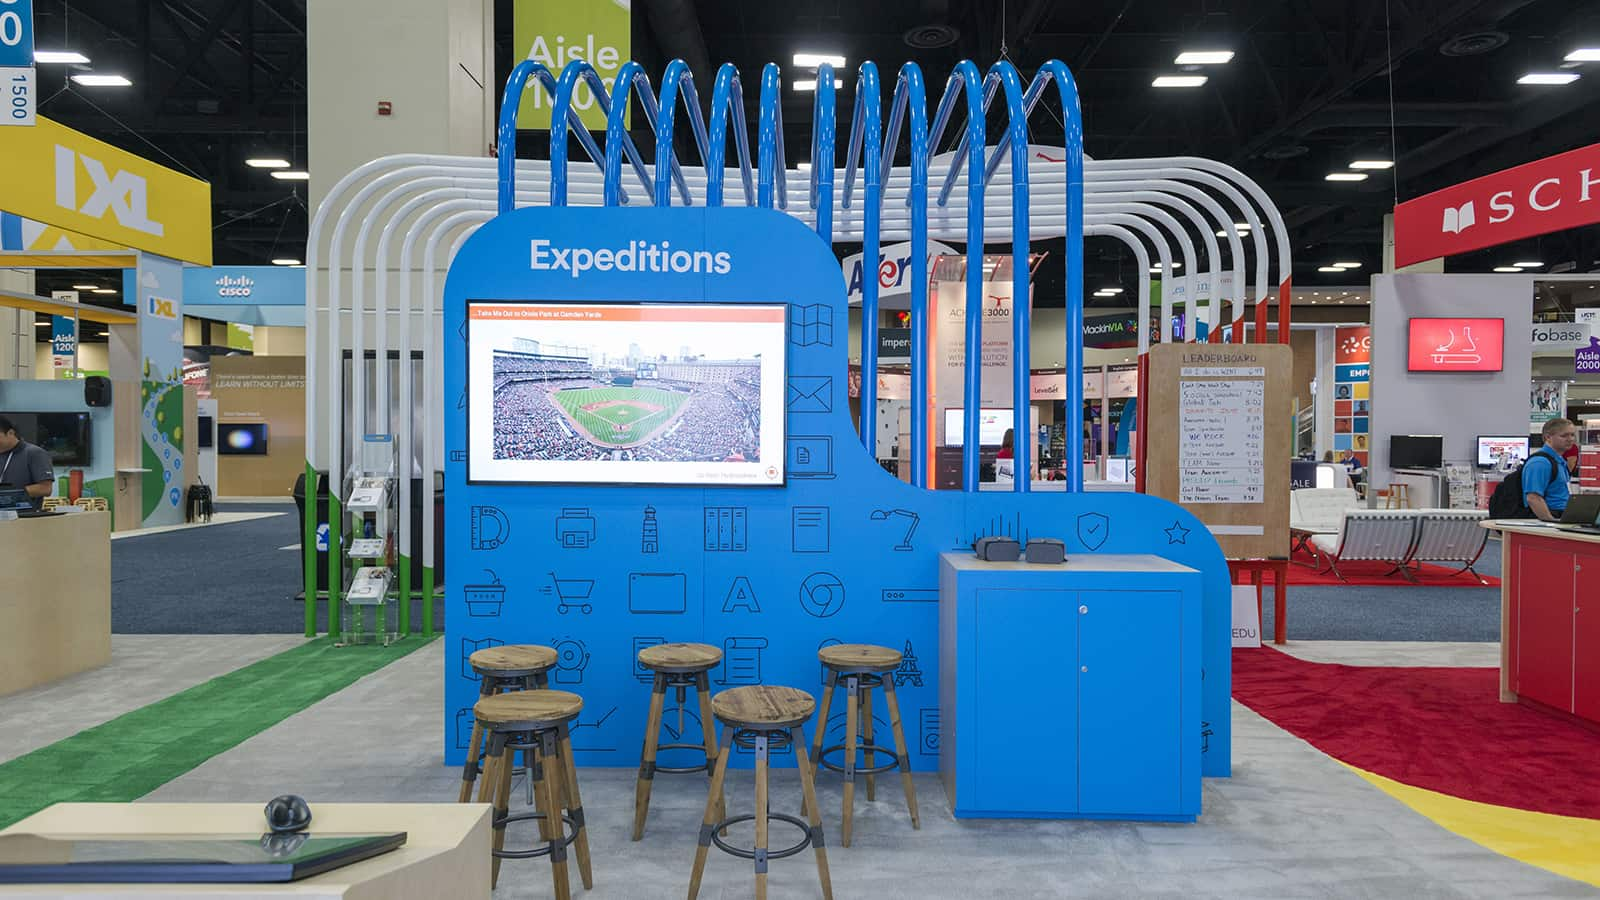 The Expedition station at the Google for Education ISTE 2017 experience.